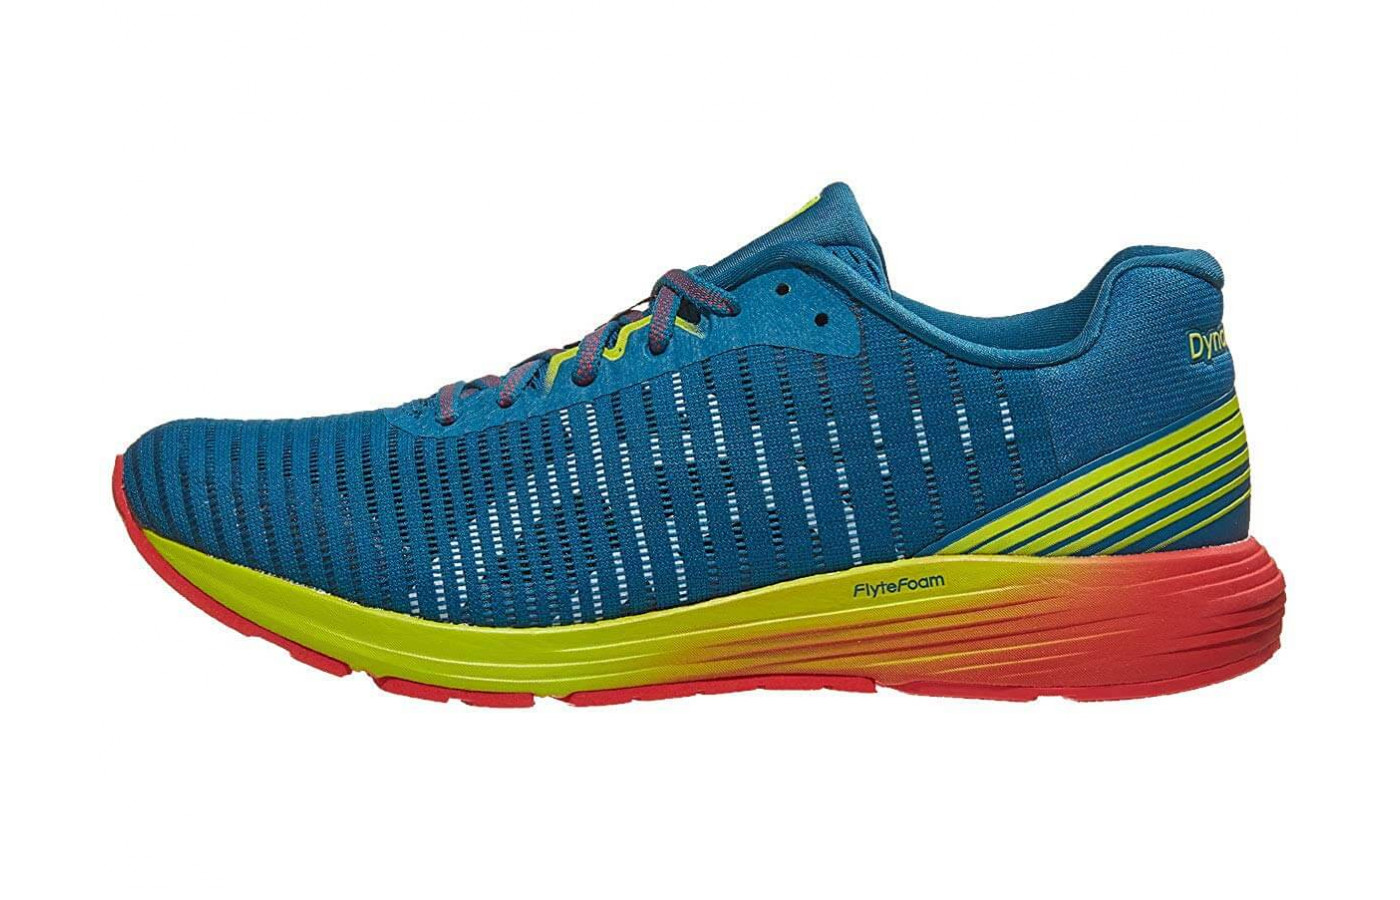 Flytefoam Lyte gives the runner added cushioning and bounce